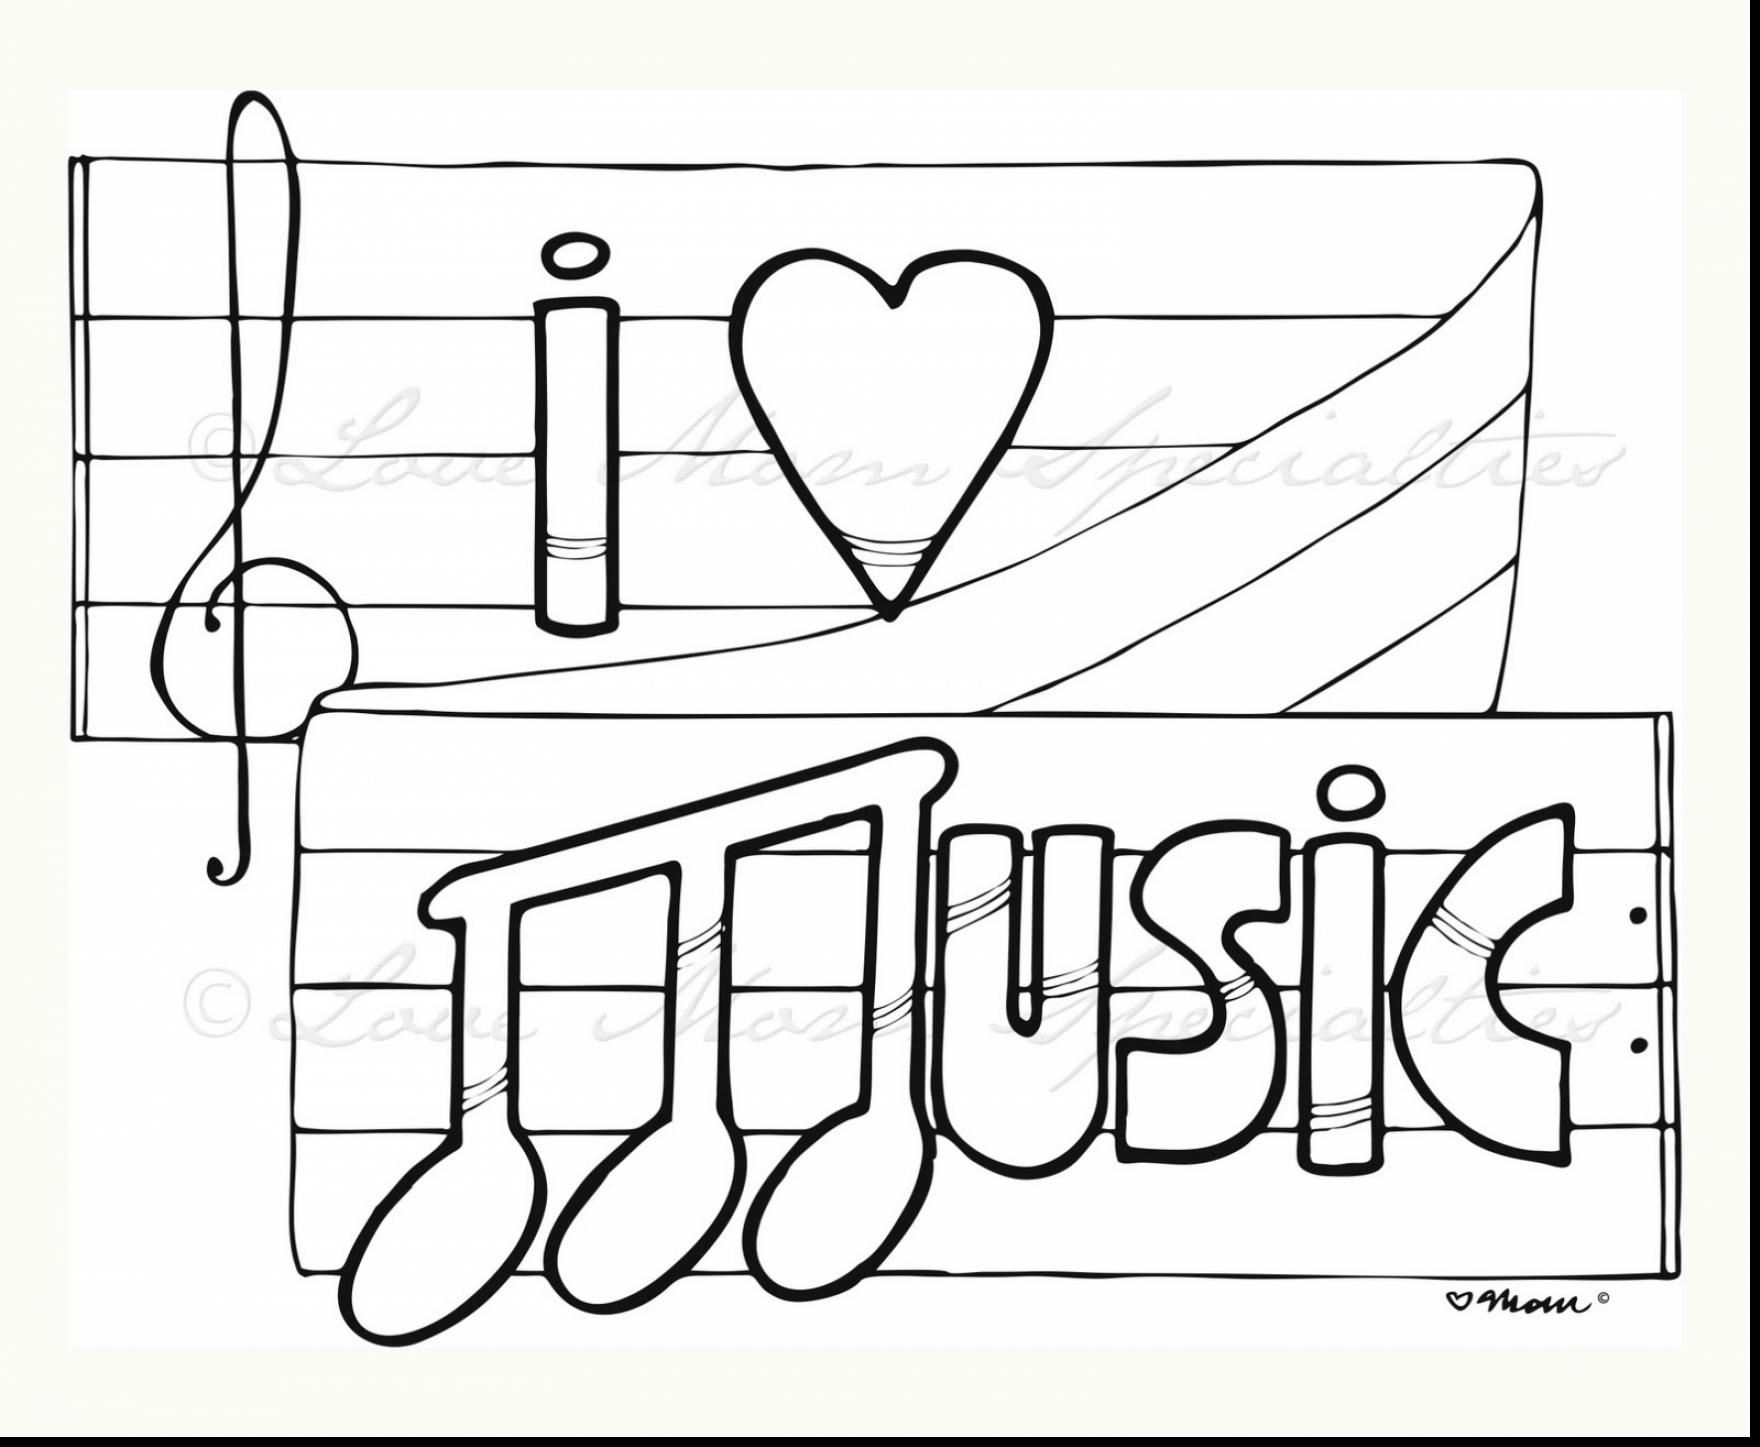 Challenge Music Notes Coloring Pages Printable Note for Kids at to Print Of Printable Music Note Coloring Pages for Kids Collection